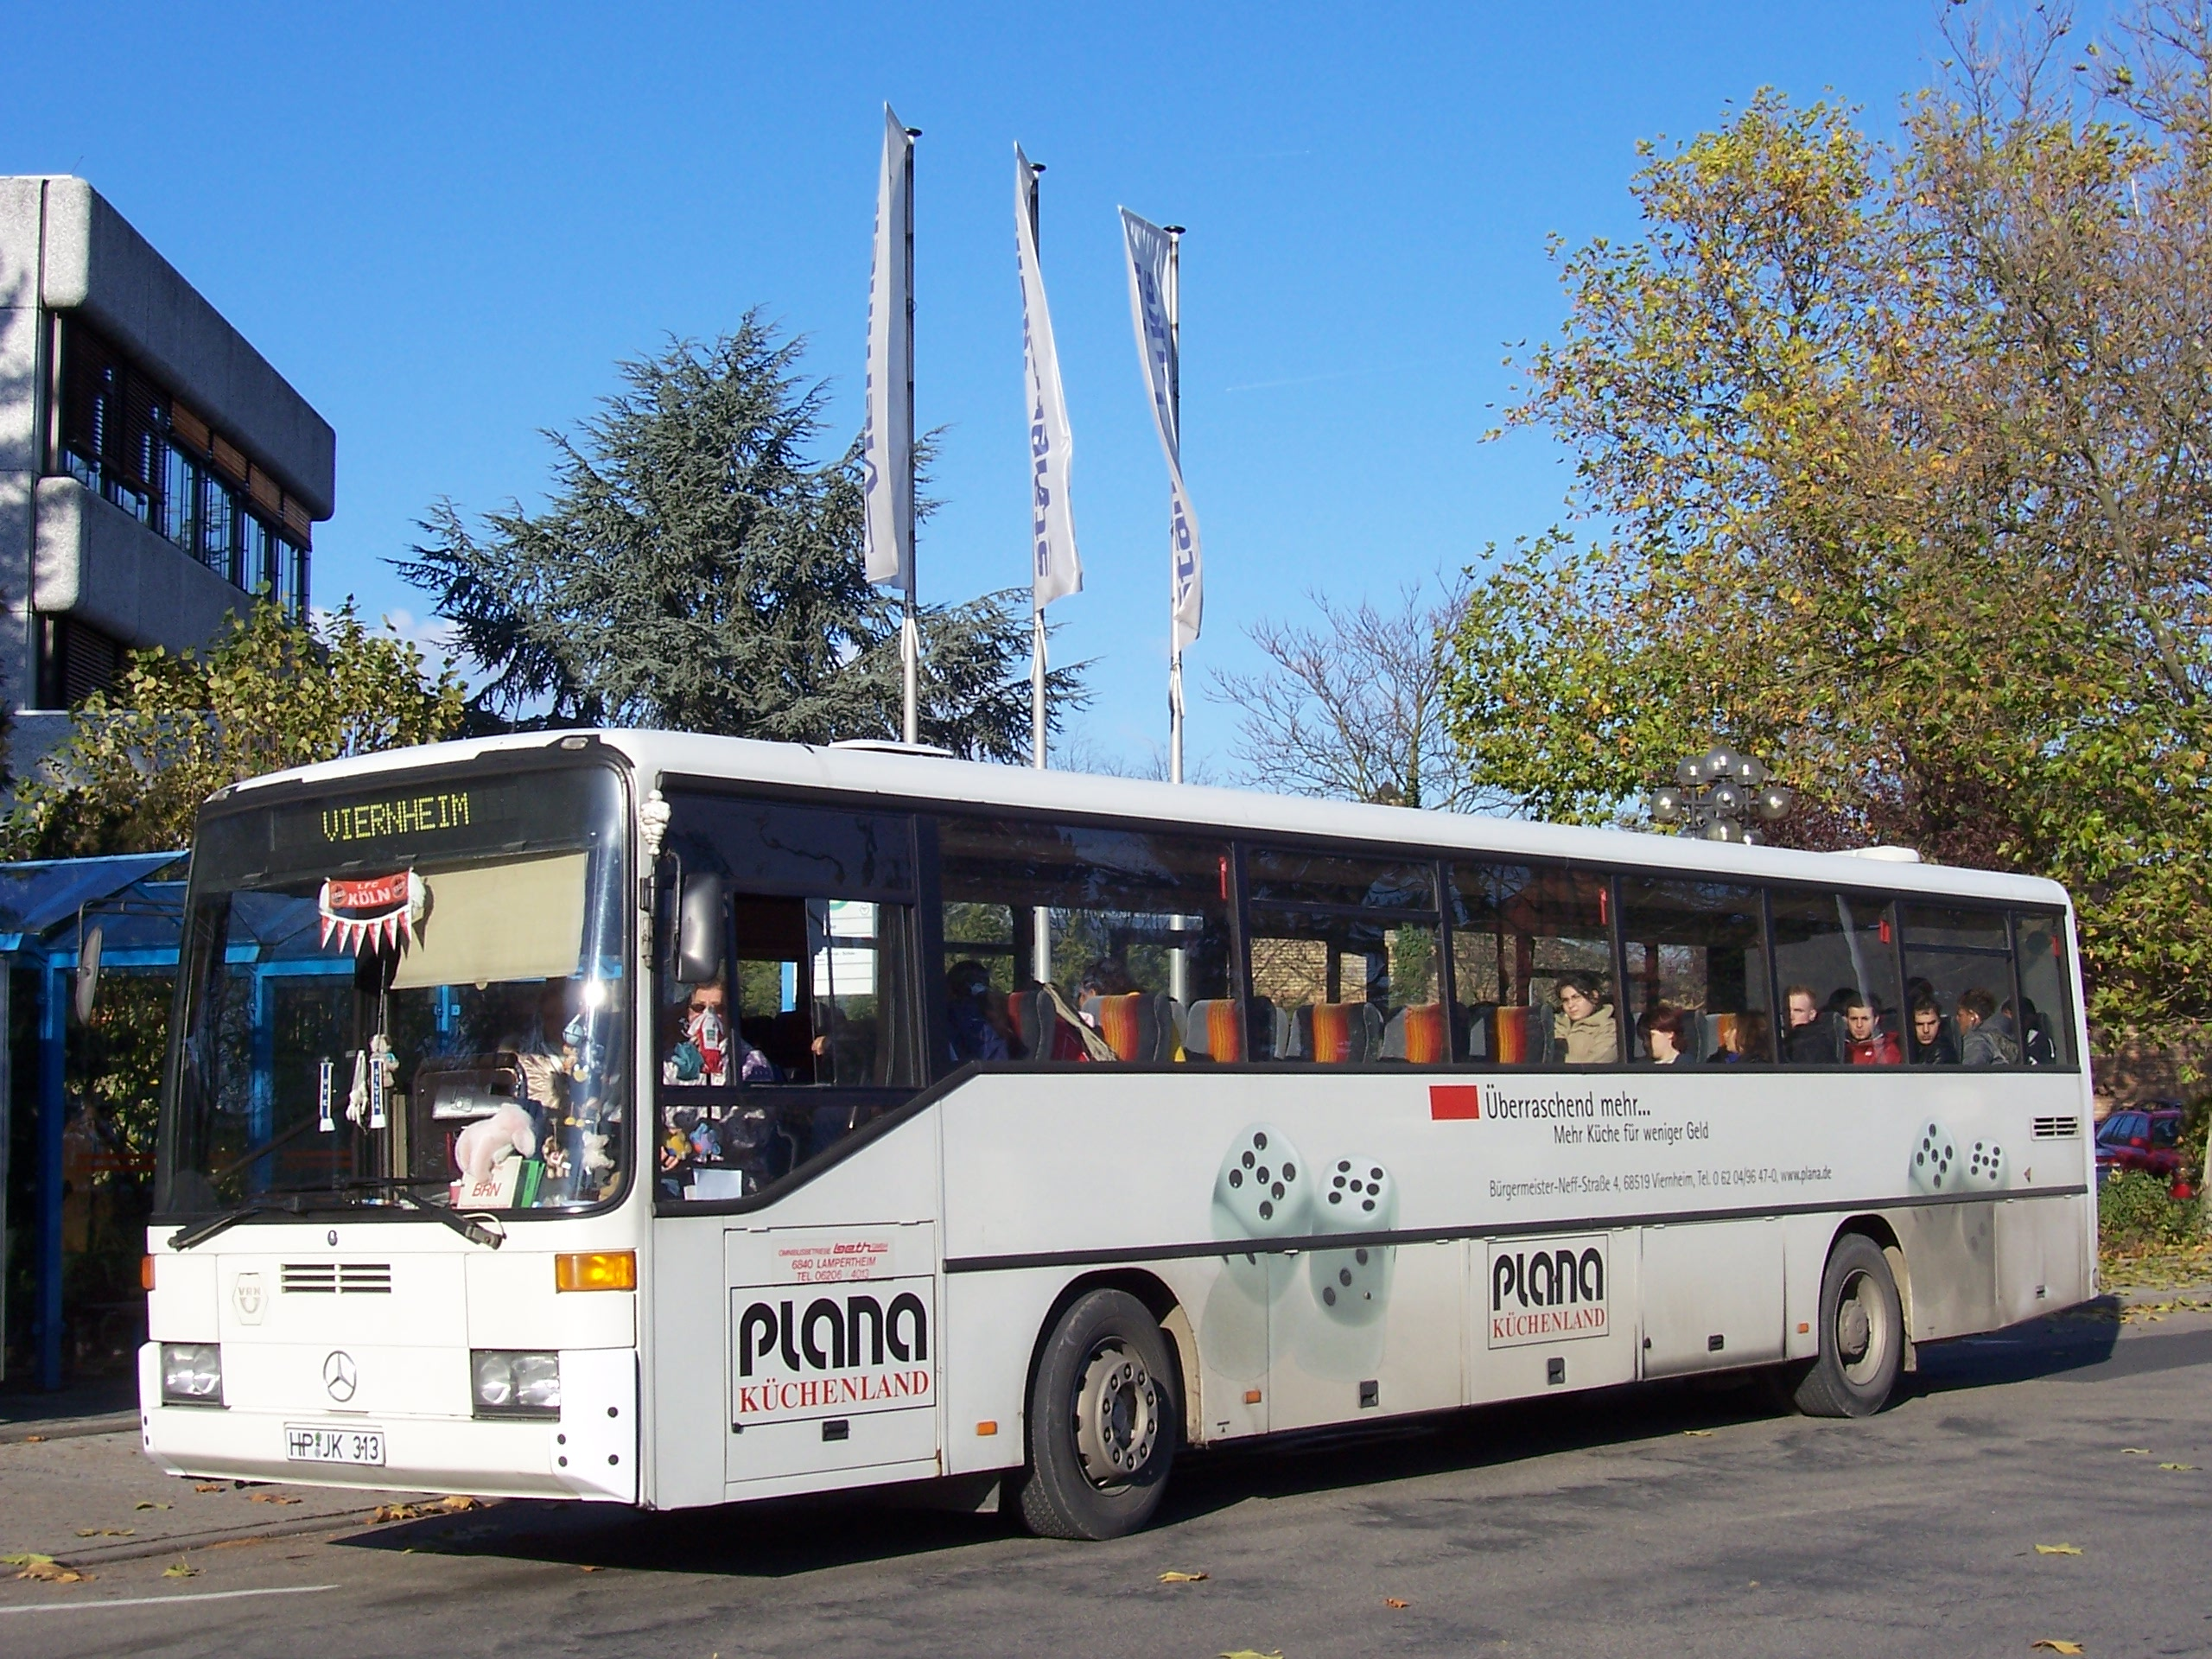 File:Mercedes-Benz O 408 bus 100 2692 jpg - Wikimedia Commons